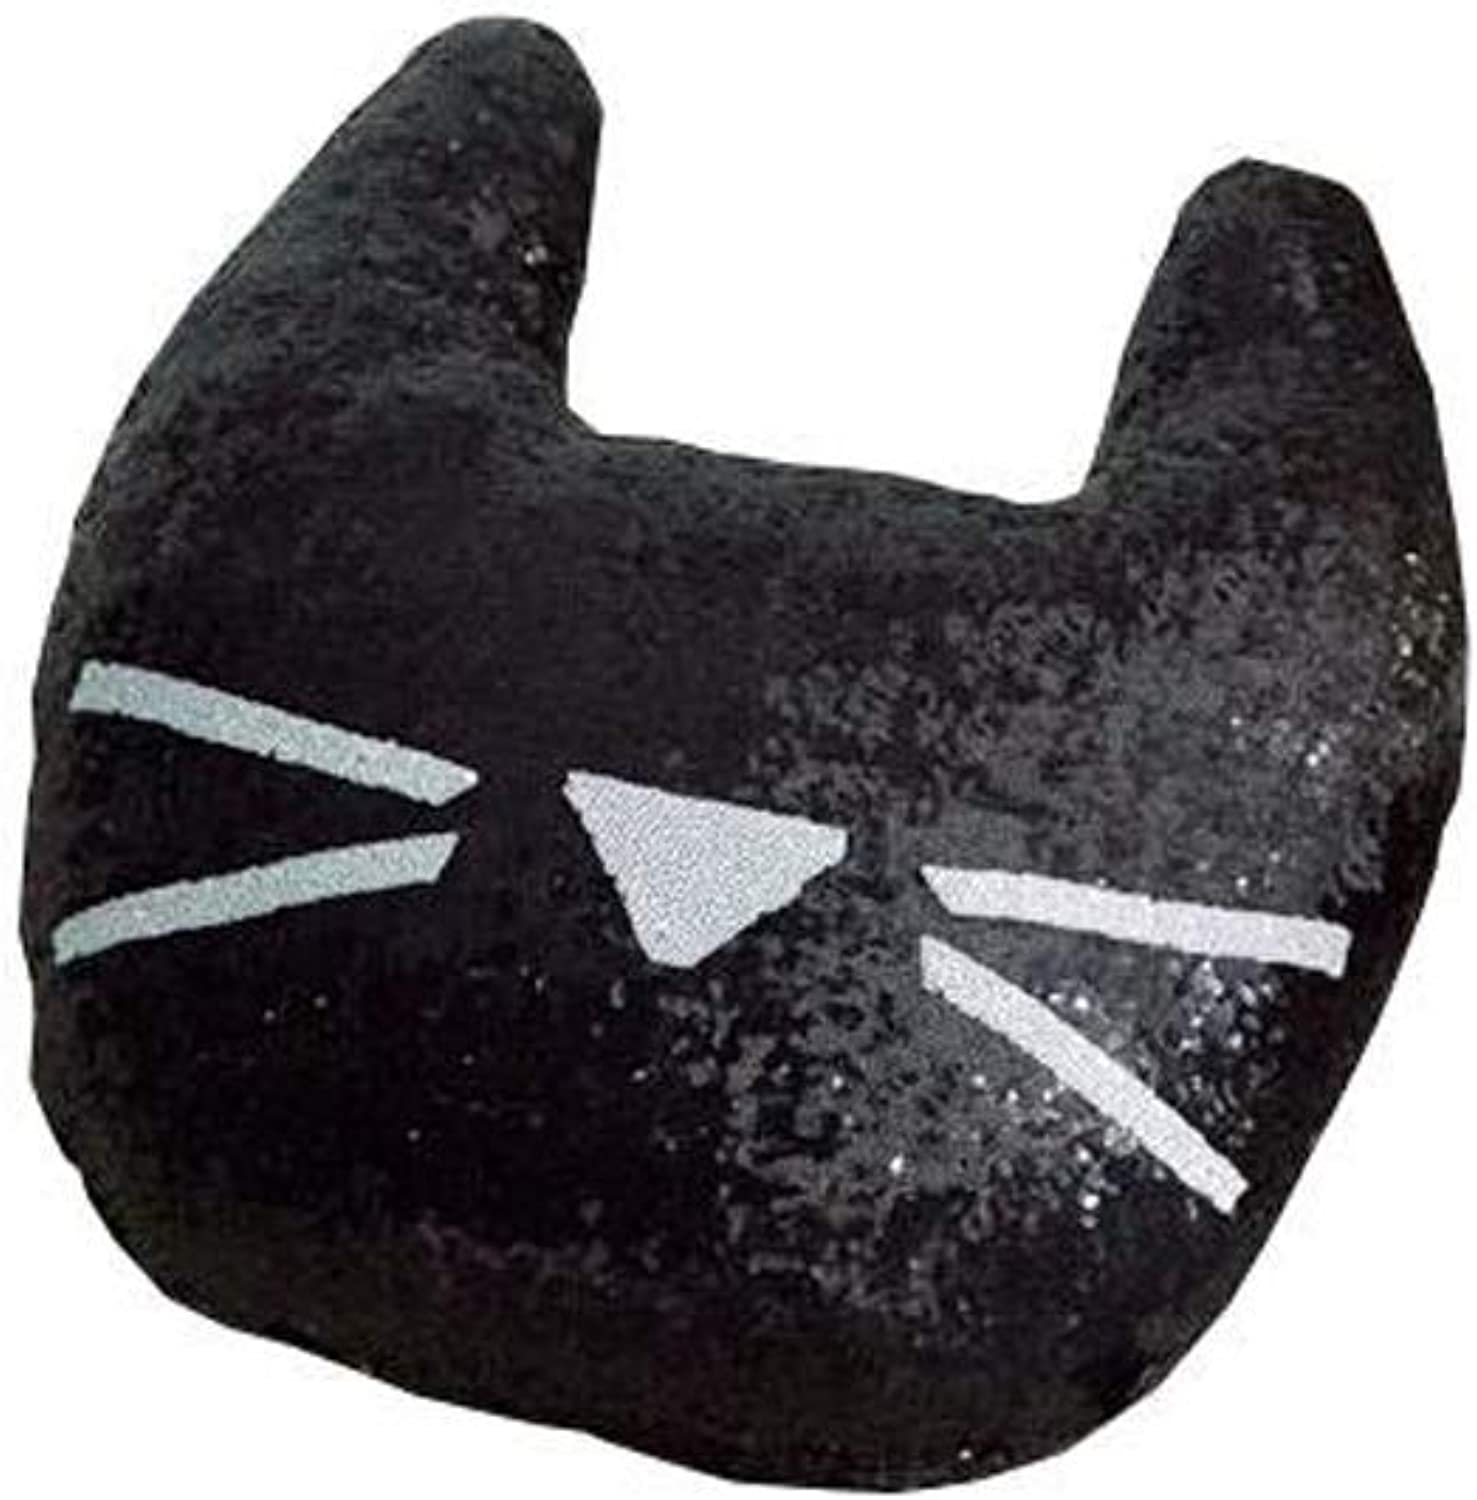 Pillow Embroidery New Sequins Pillow Animal Model Cat Cat Cushion Backrest Gifts QYSZYG (color   Black)